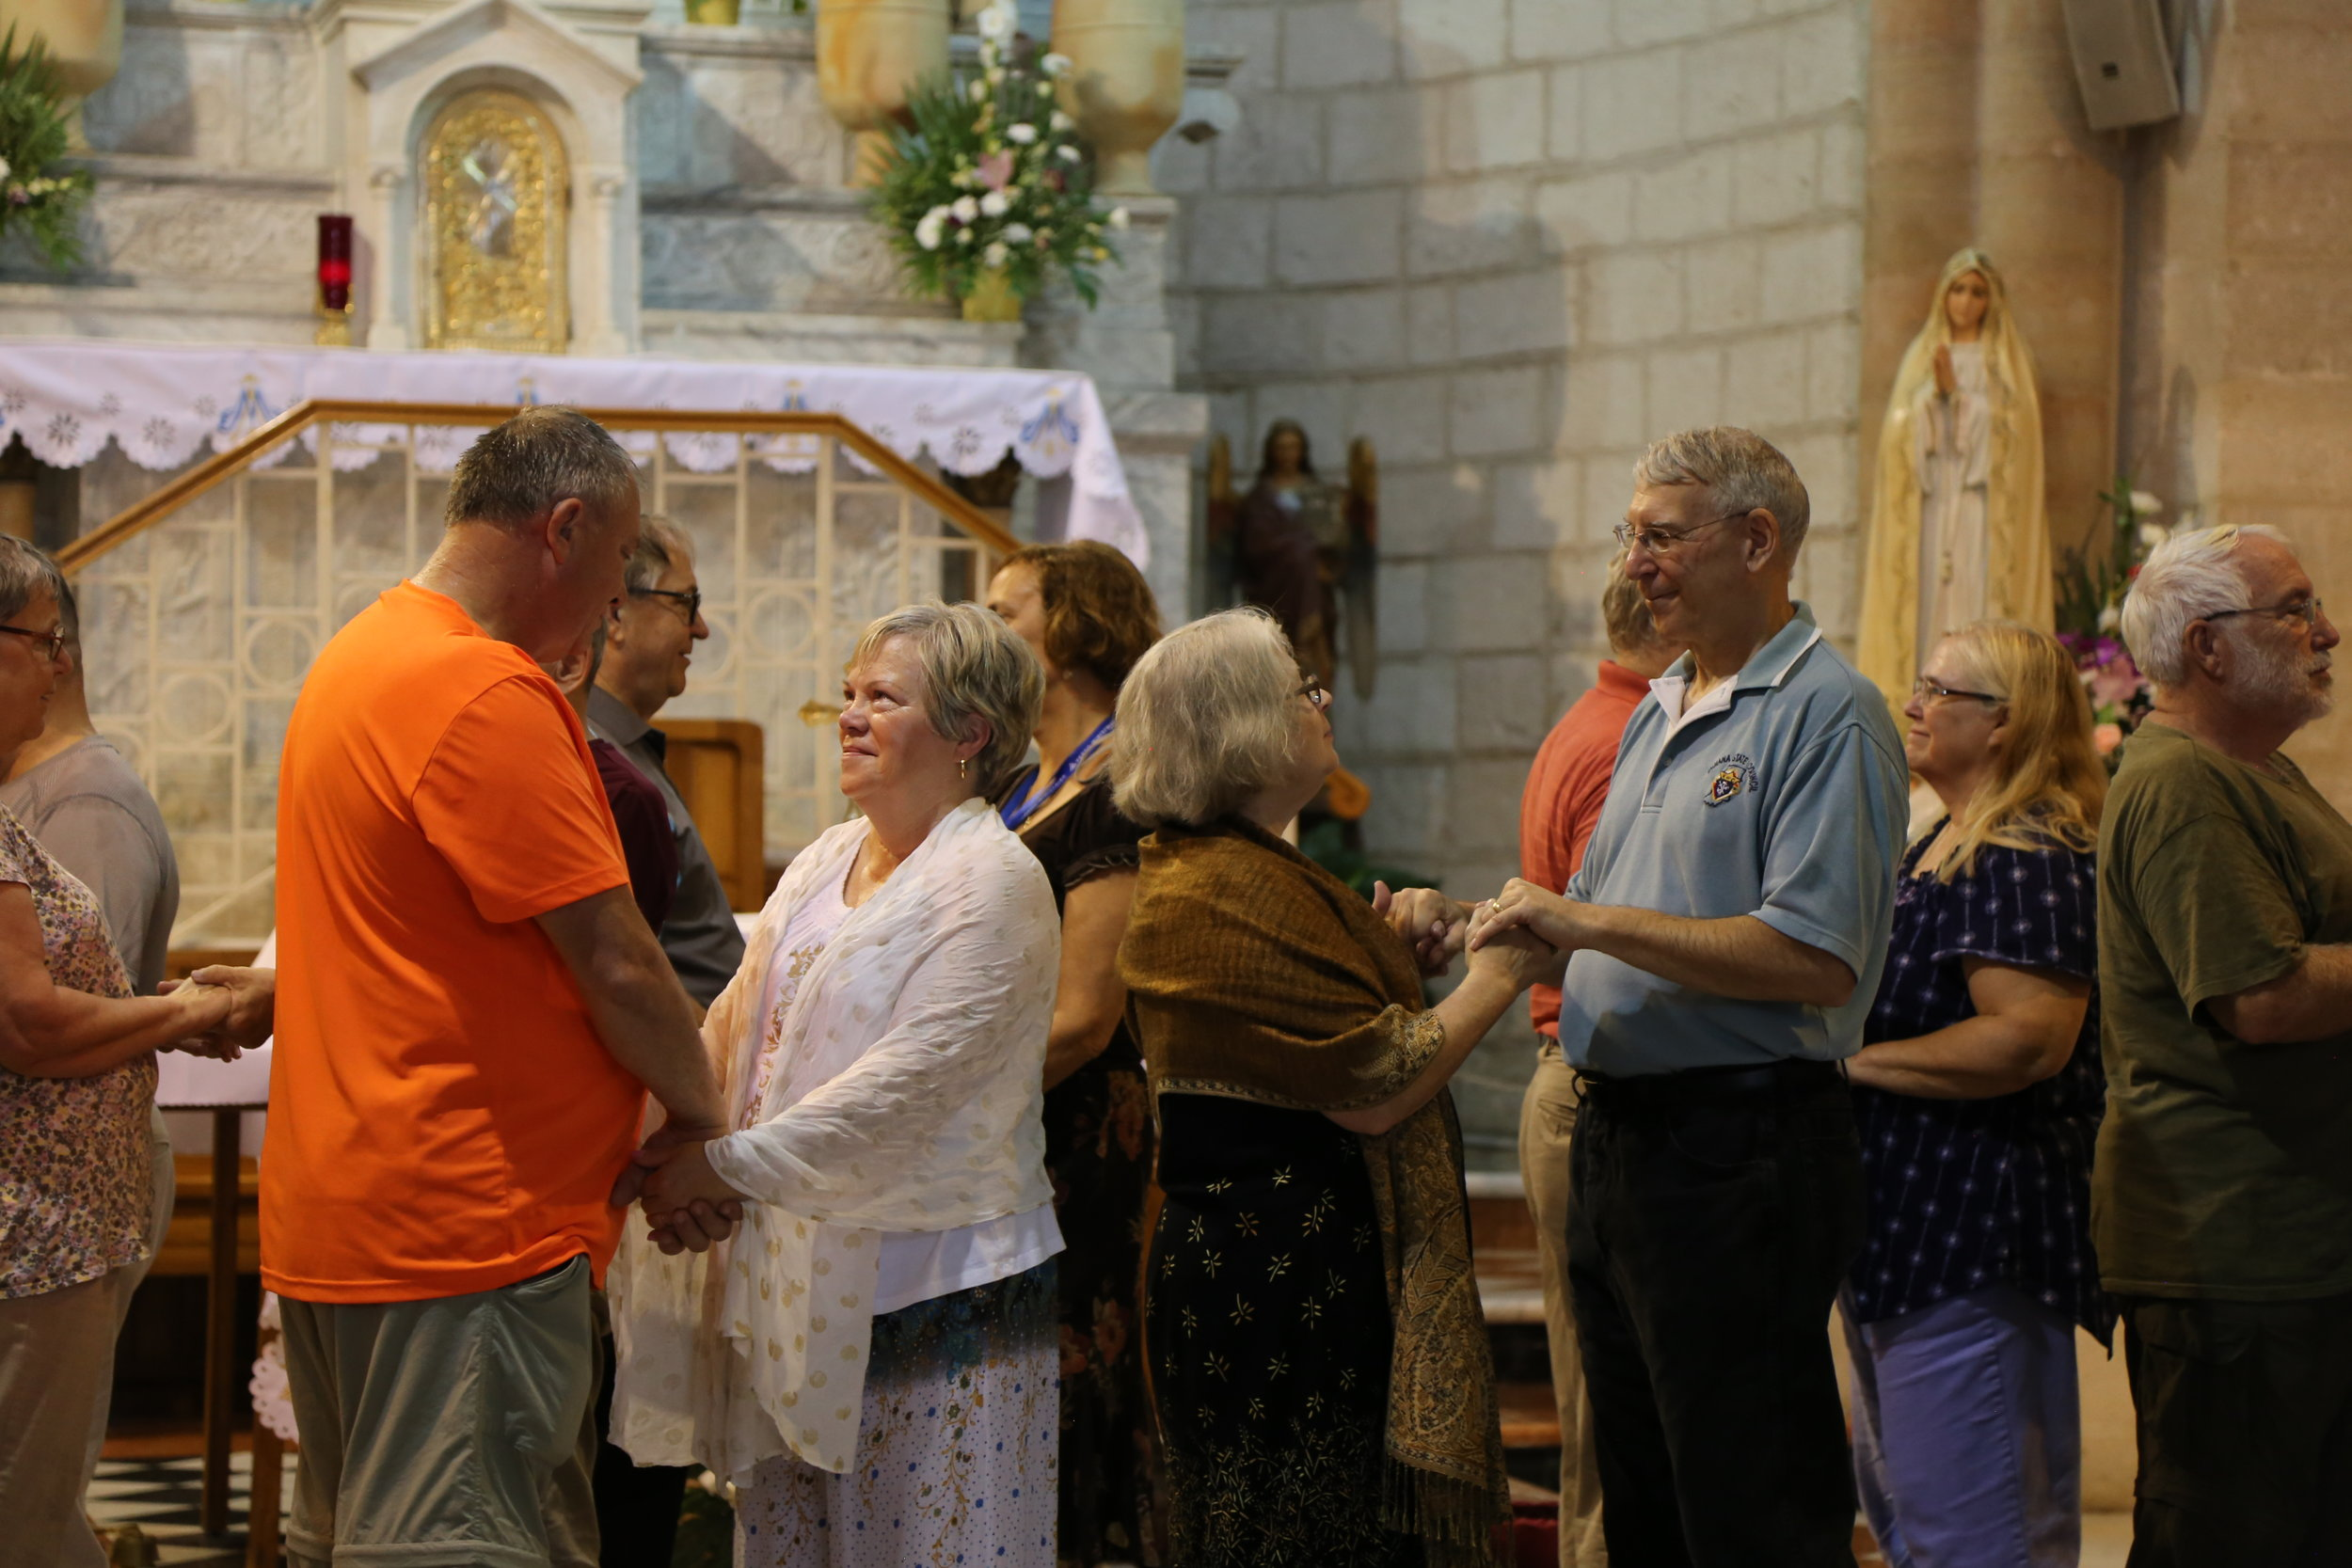 Renewing wedding vows at the Wedding Church in Cana.